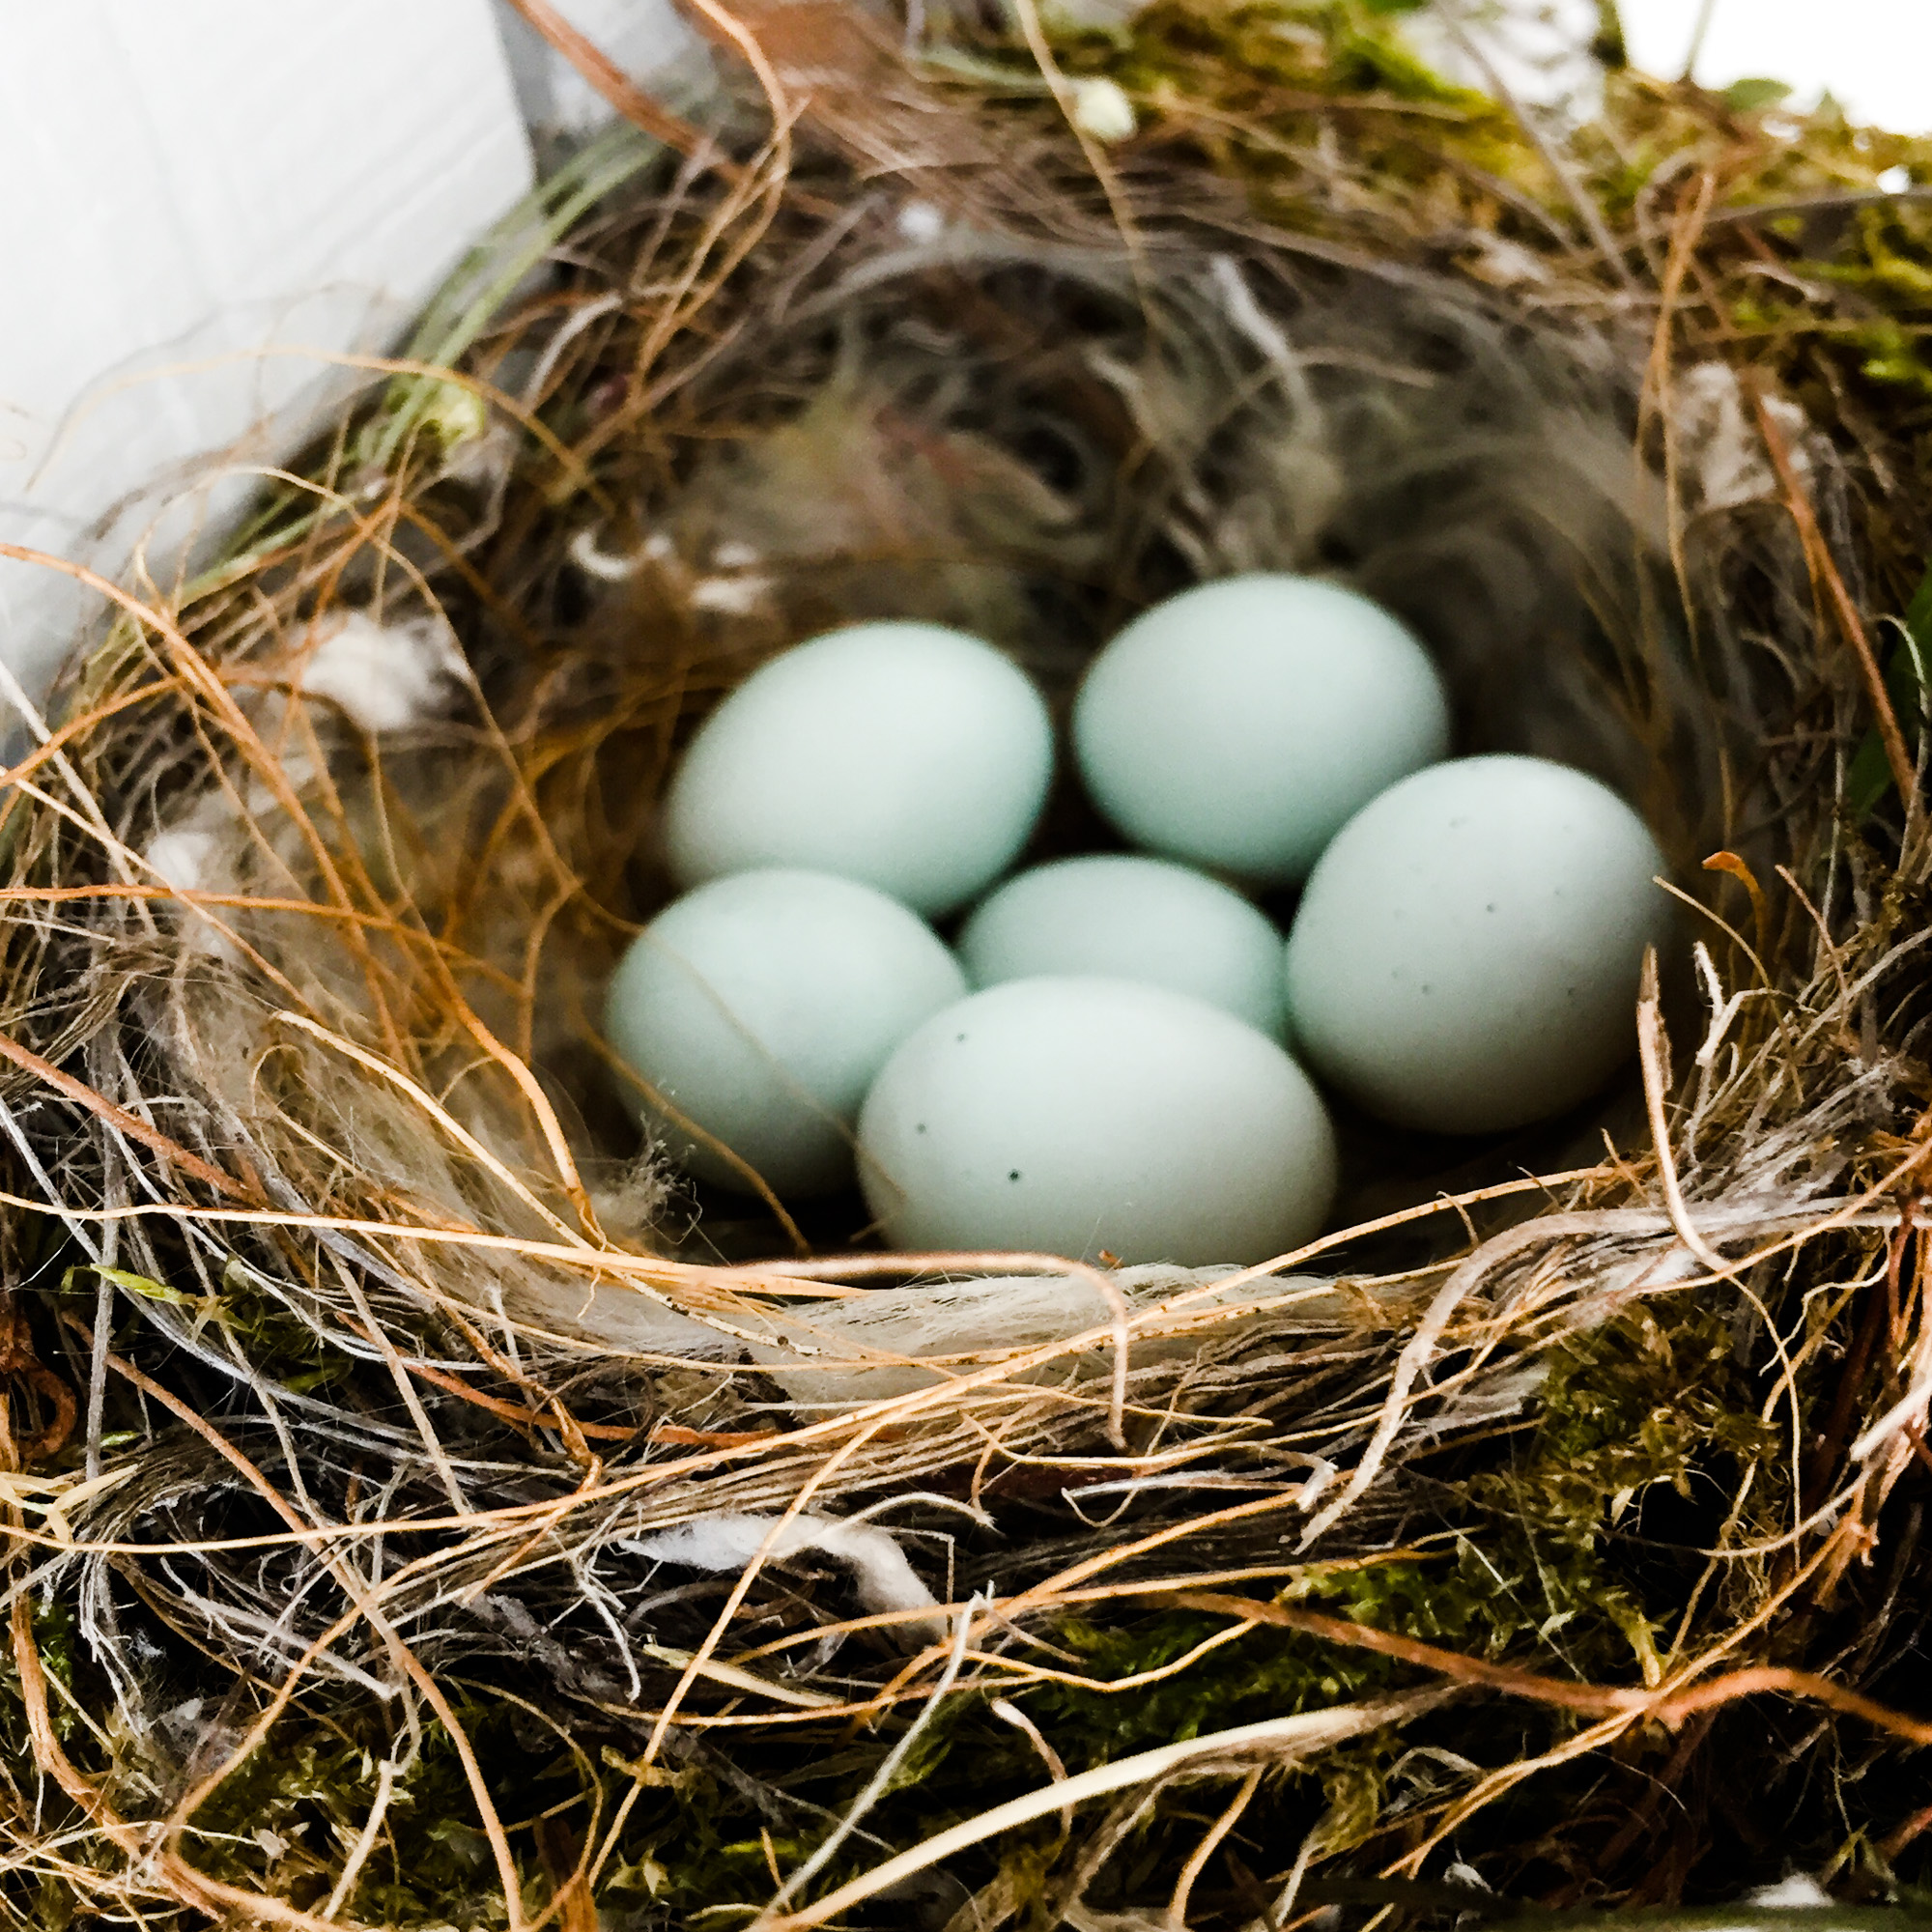 House Finch nest with six pale blue speckled eggs